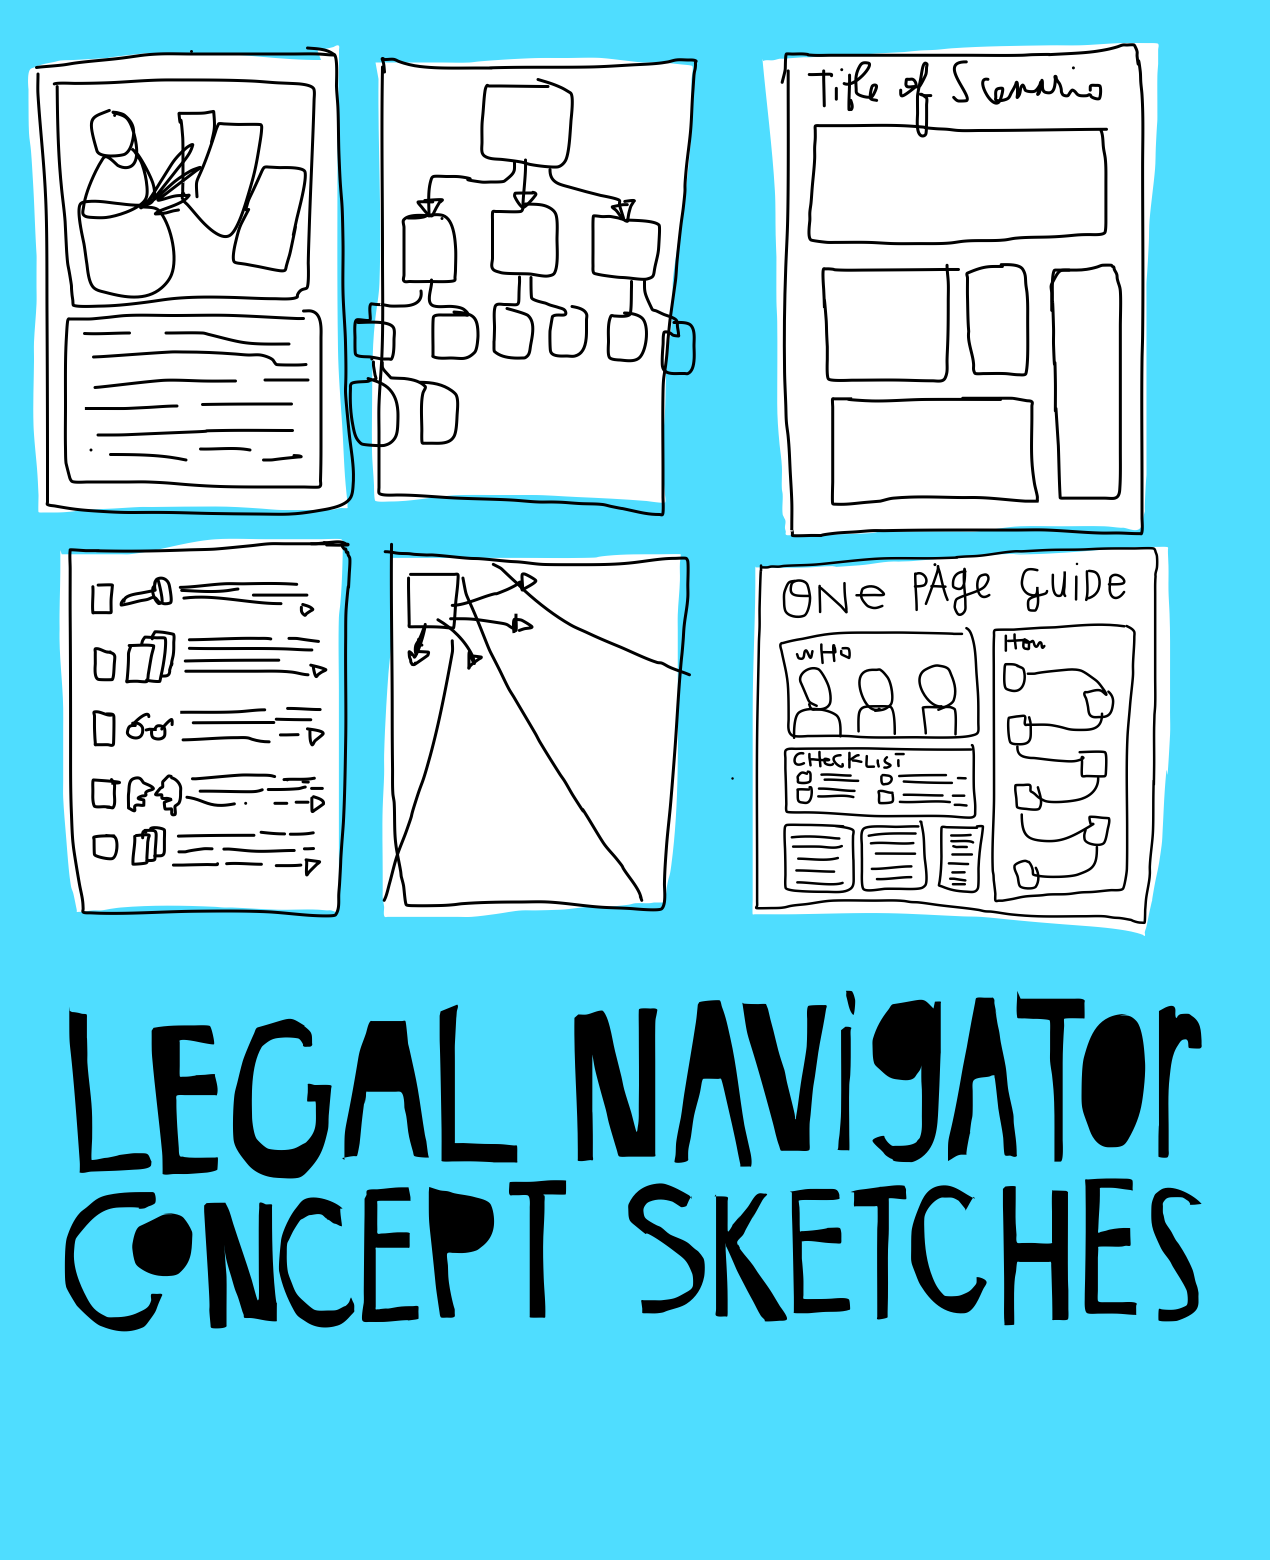 Legal Navigator Images